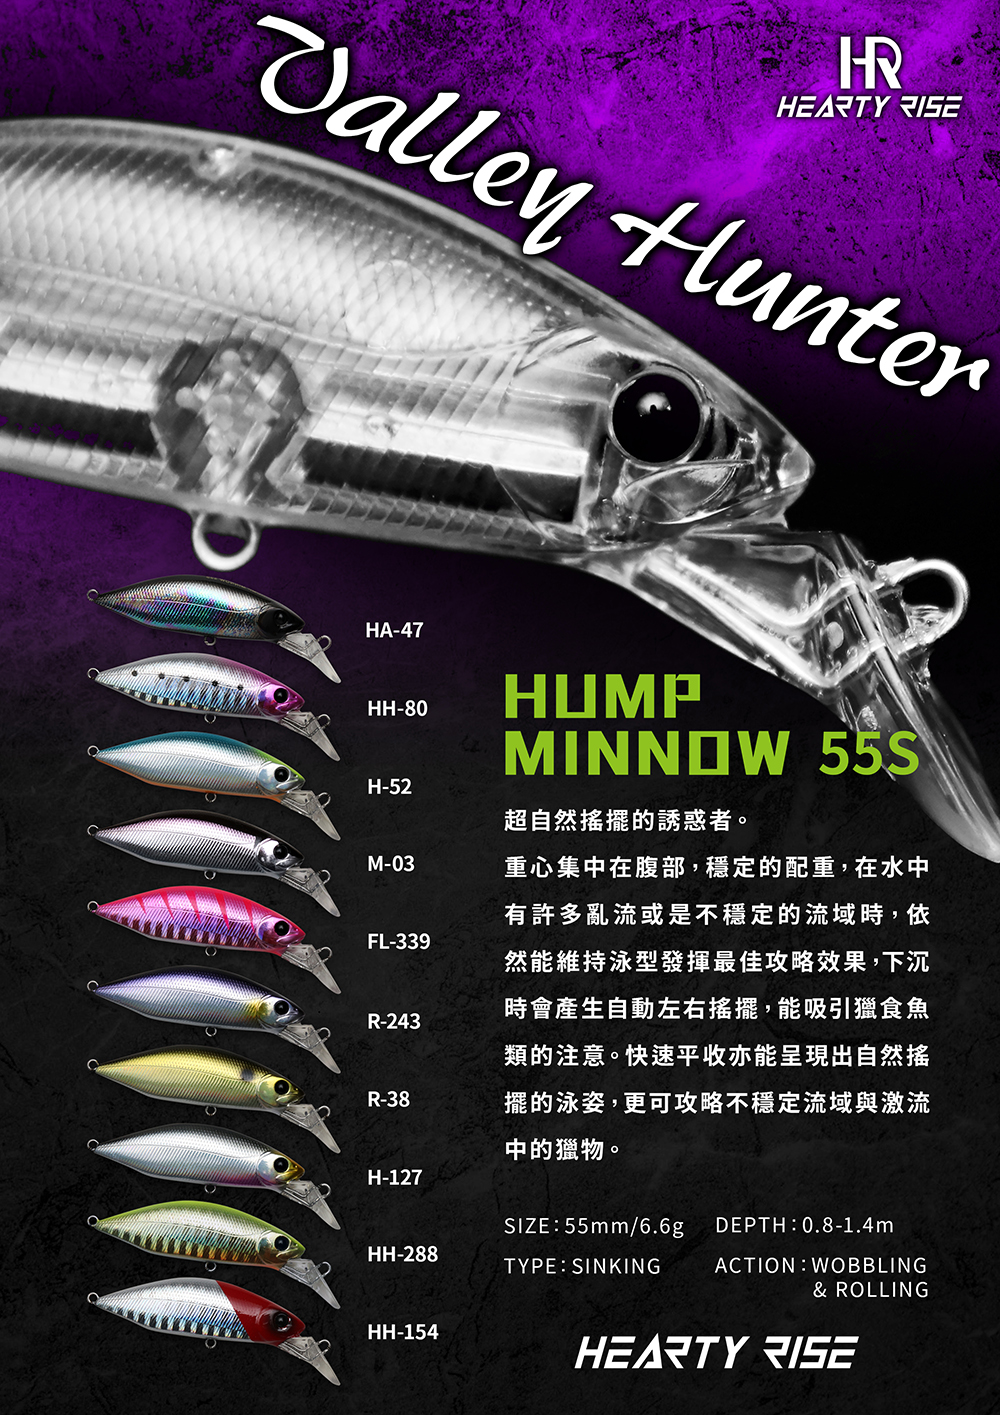 HR VALLEY HUNTER 溪谷獵人 Hump Minnow55S 1000